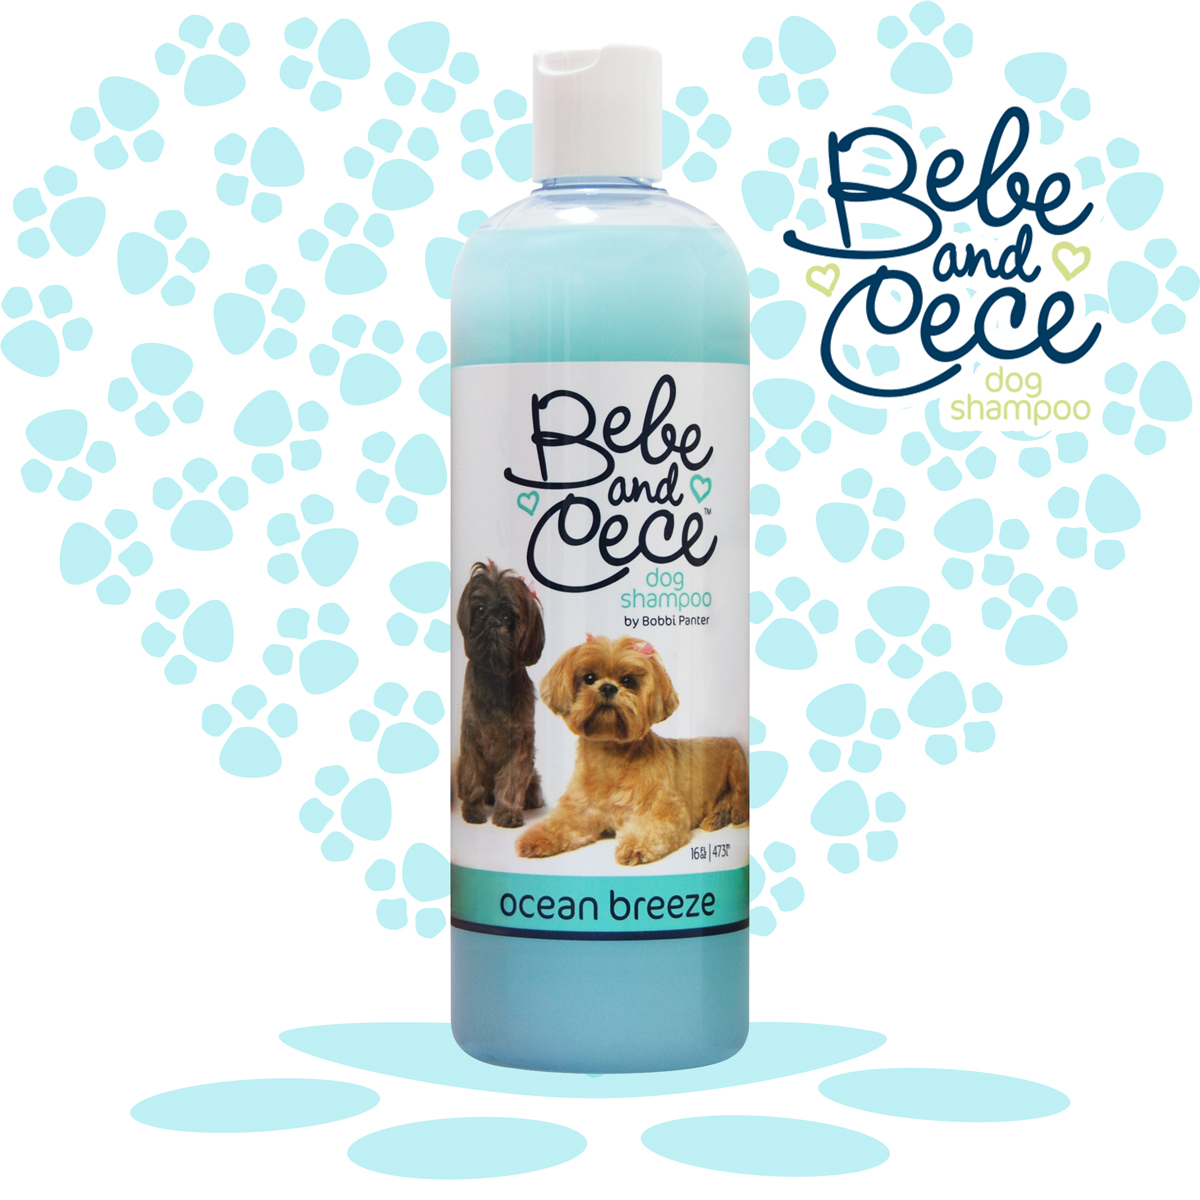 Bebe and Cece Ocean Breeze Dog Shampoo by Bobbi Panter